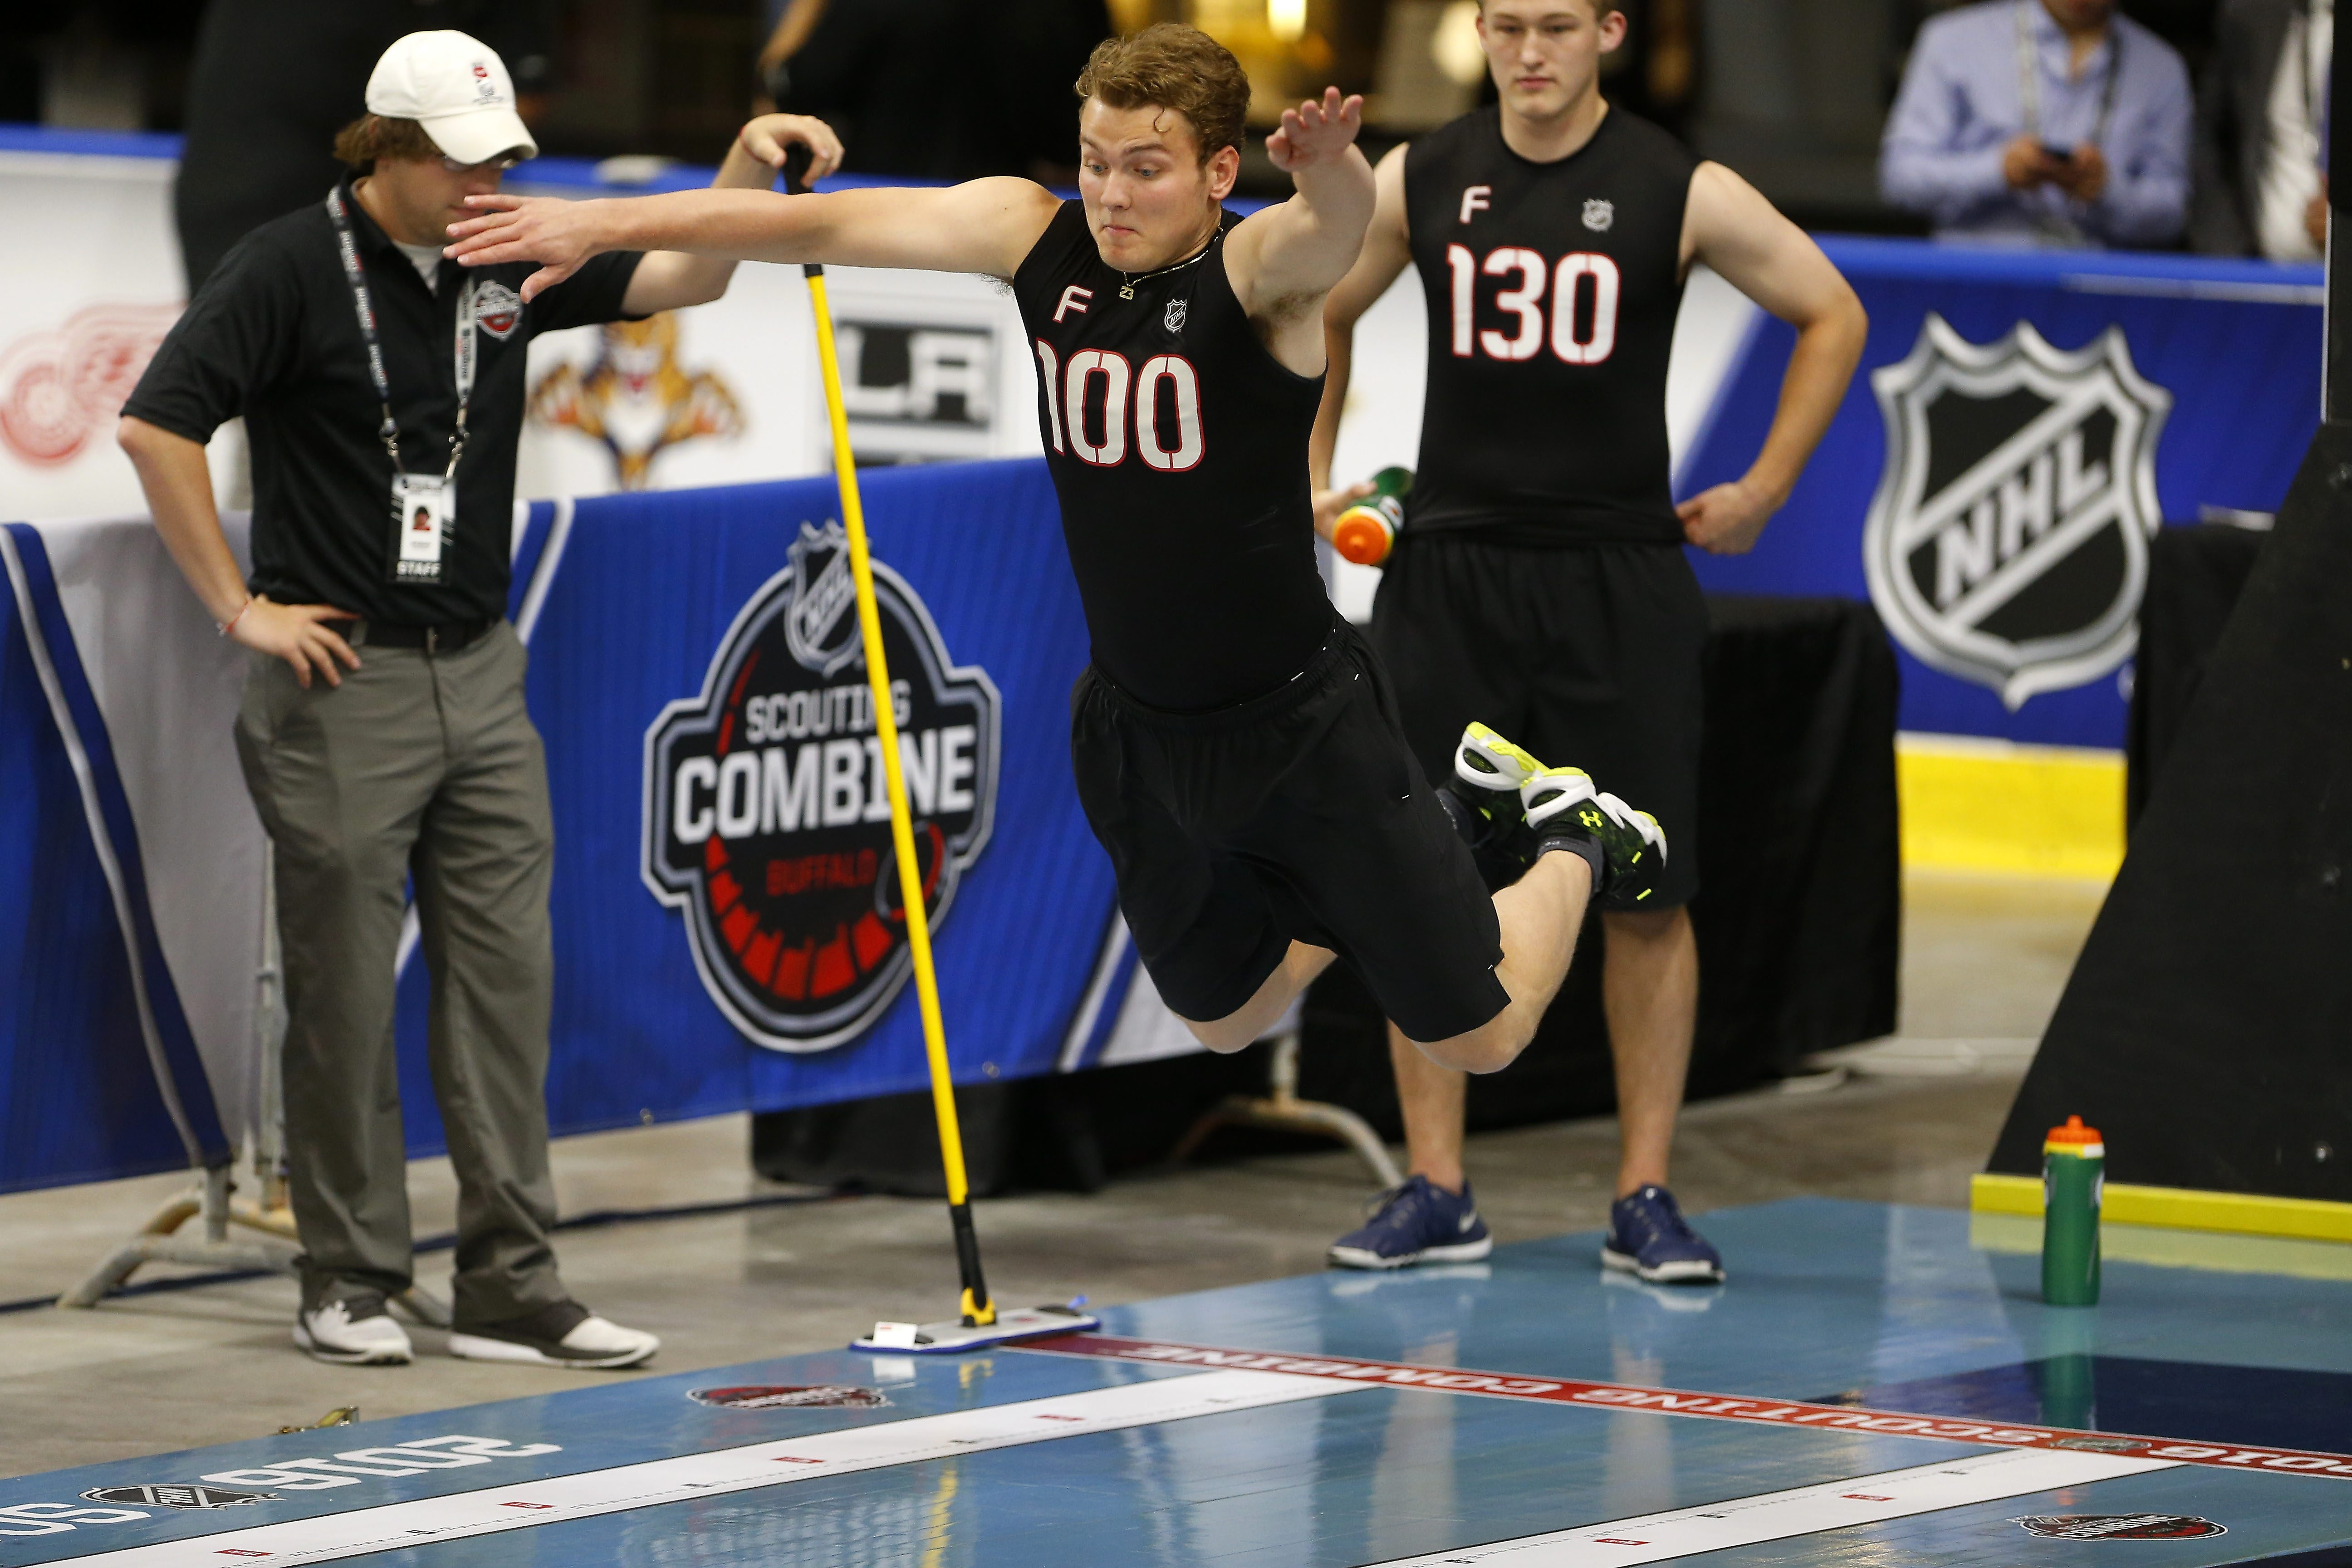 Kieffer Bellows does the long jump station during the NHL Scouting Combine at Harbor Center in Buffalo Saturday, June 4, 2016.    (Mark Mulville/Buffalo News)